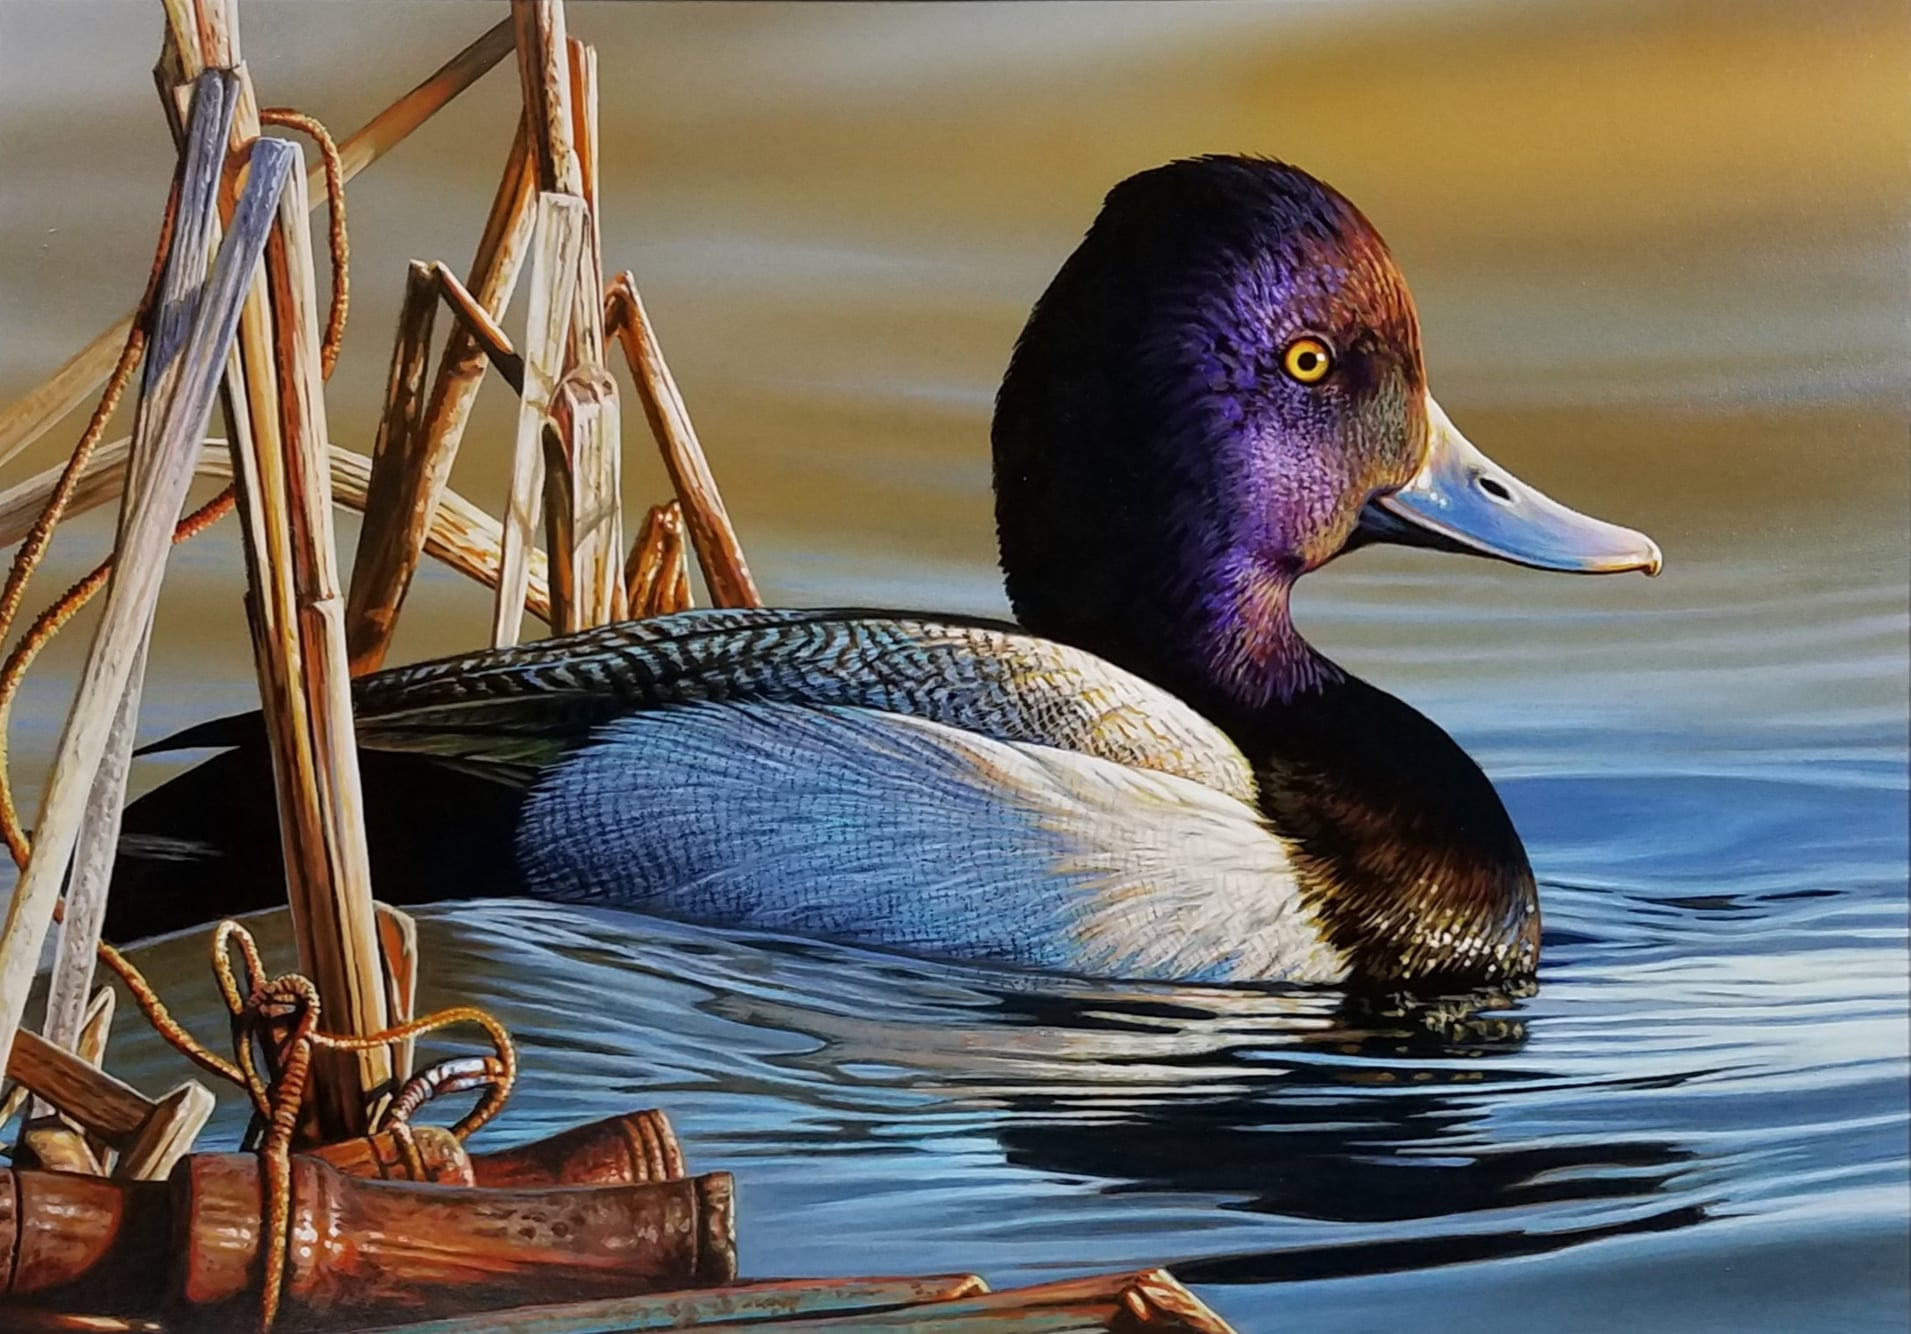 Drake Lesser Scaup by Richard Clifton 2021-2022 Federal Duck Stamp Winner